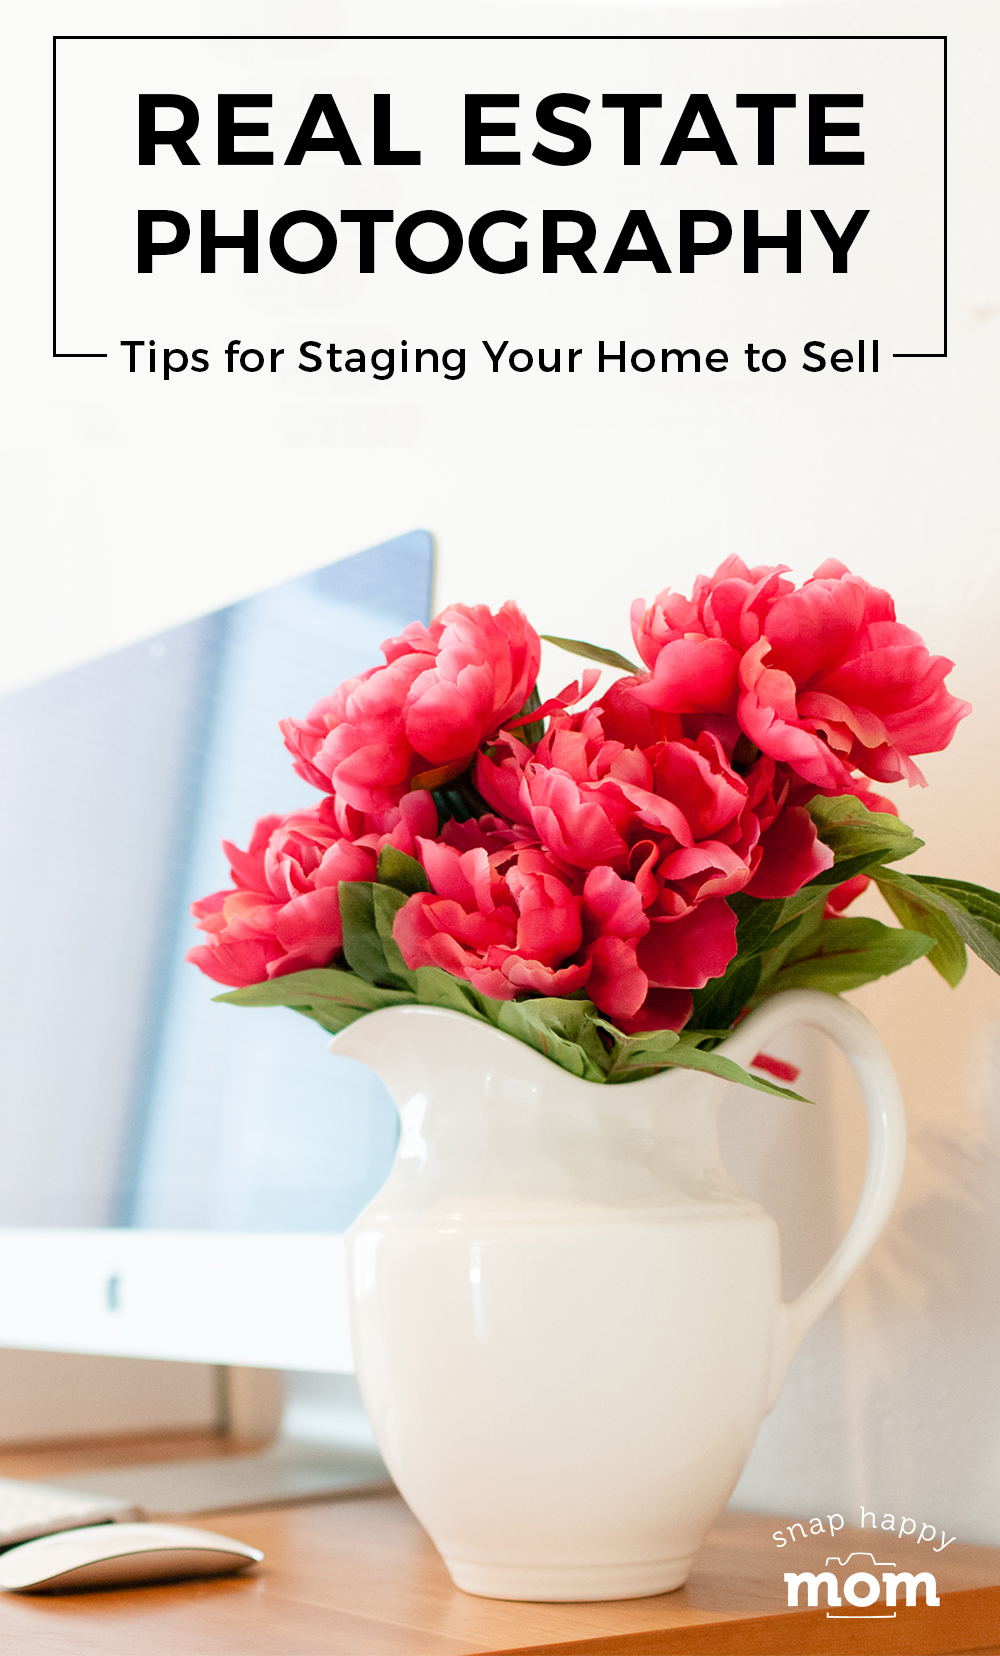 Real Estate Photography: How To Stage Your Home to SELL!